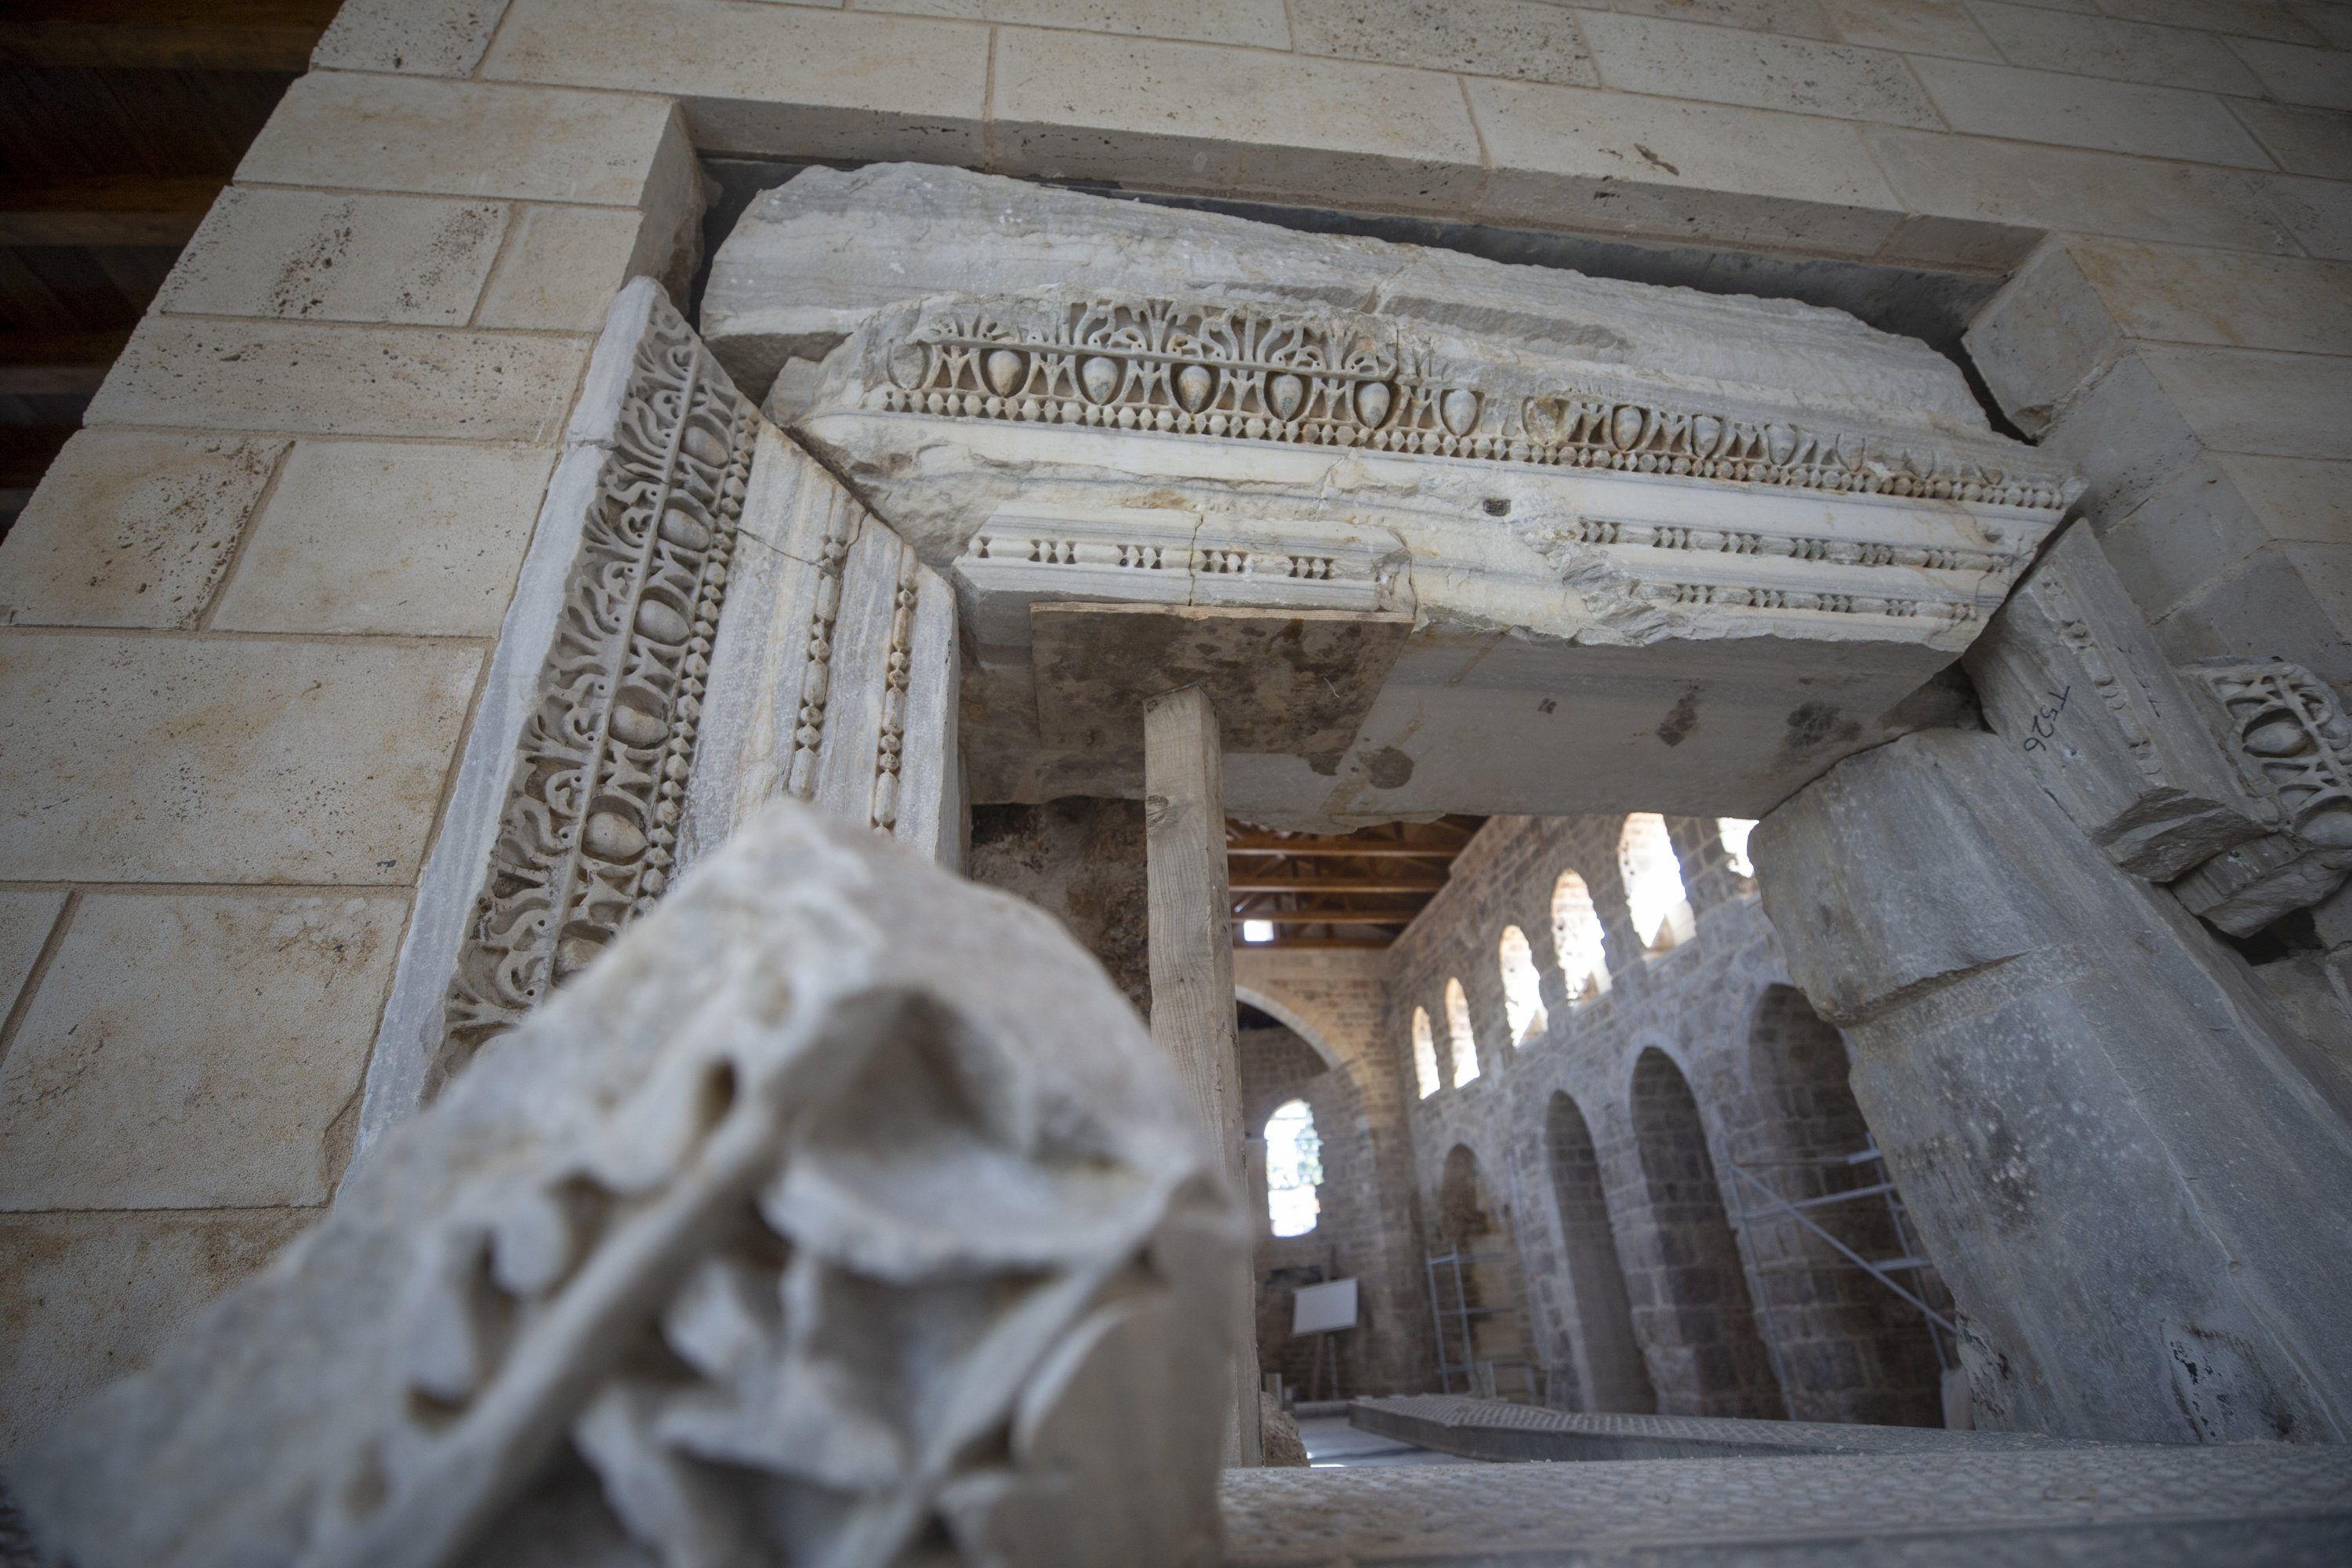 Carving details on marble slabs in the Şehzade Korkut Mosque, Antalya, southern Turkey, Aug. 14, 2020. (AA Photo)